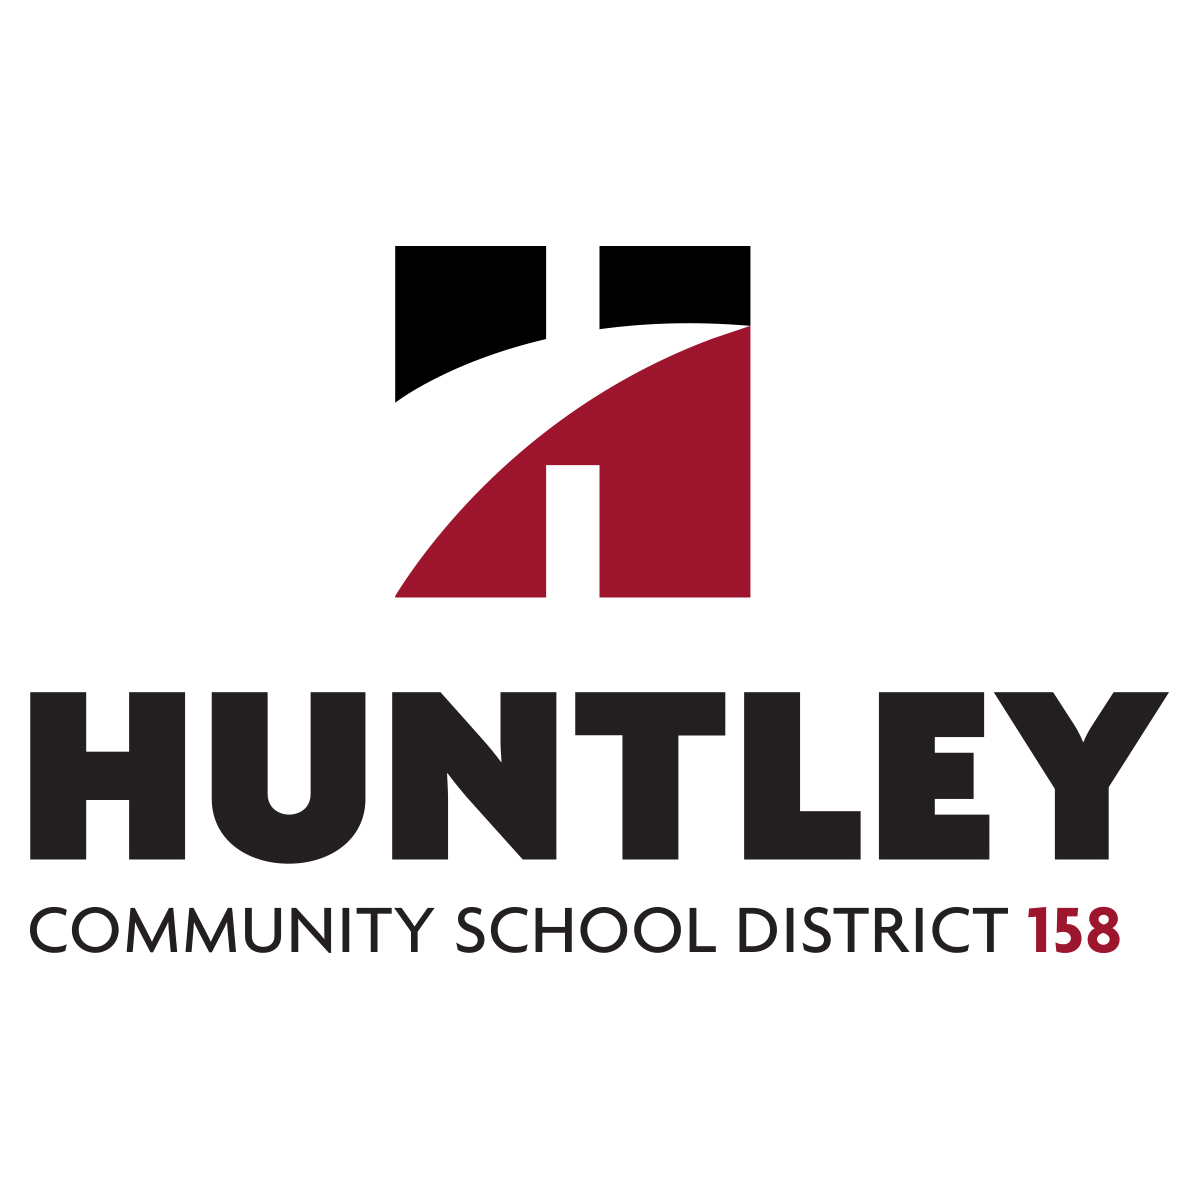 Logo courtesy of District 158's website